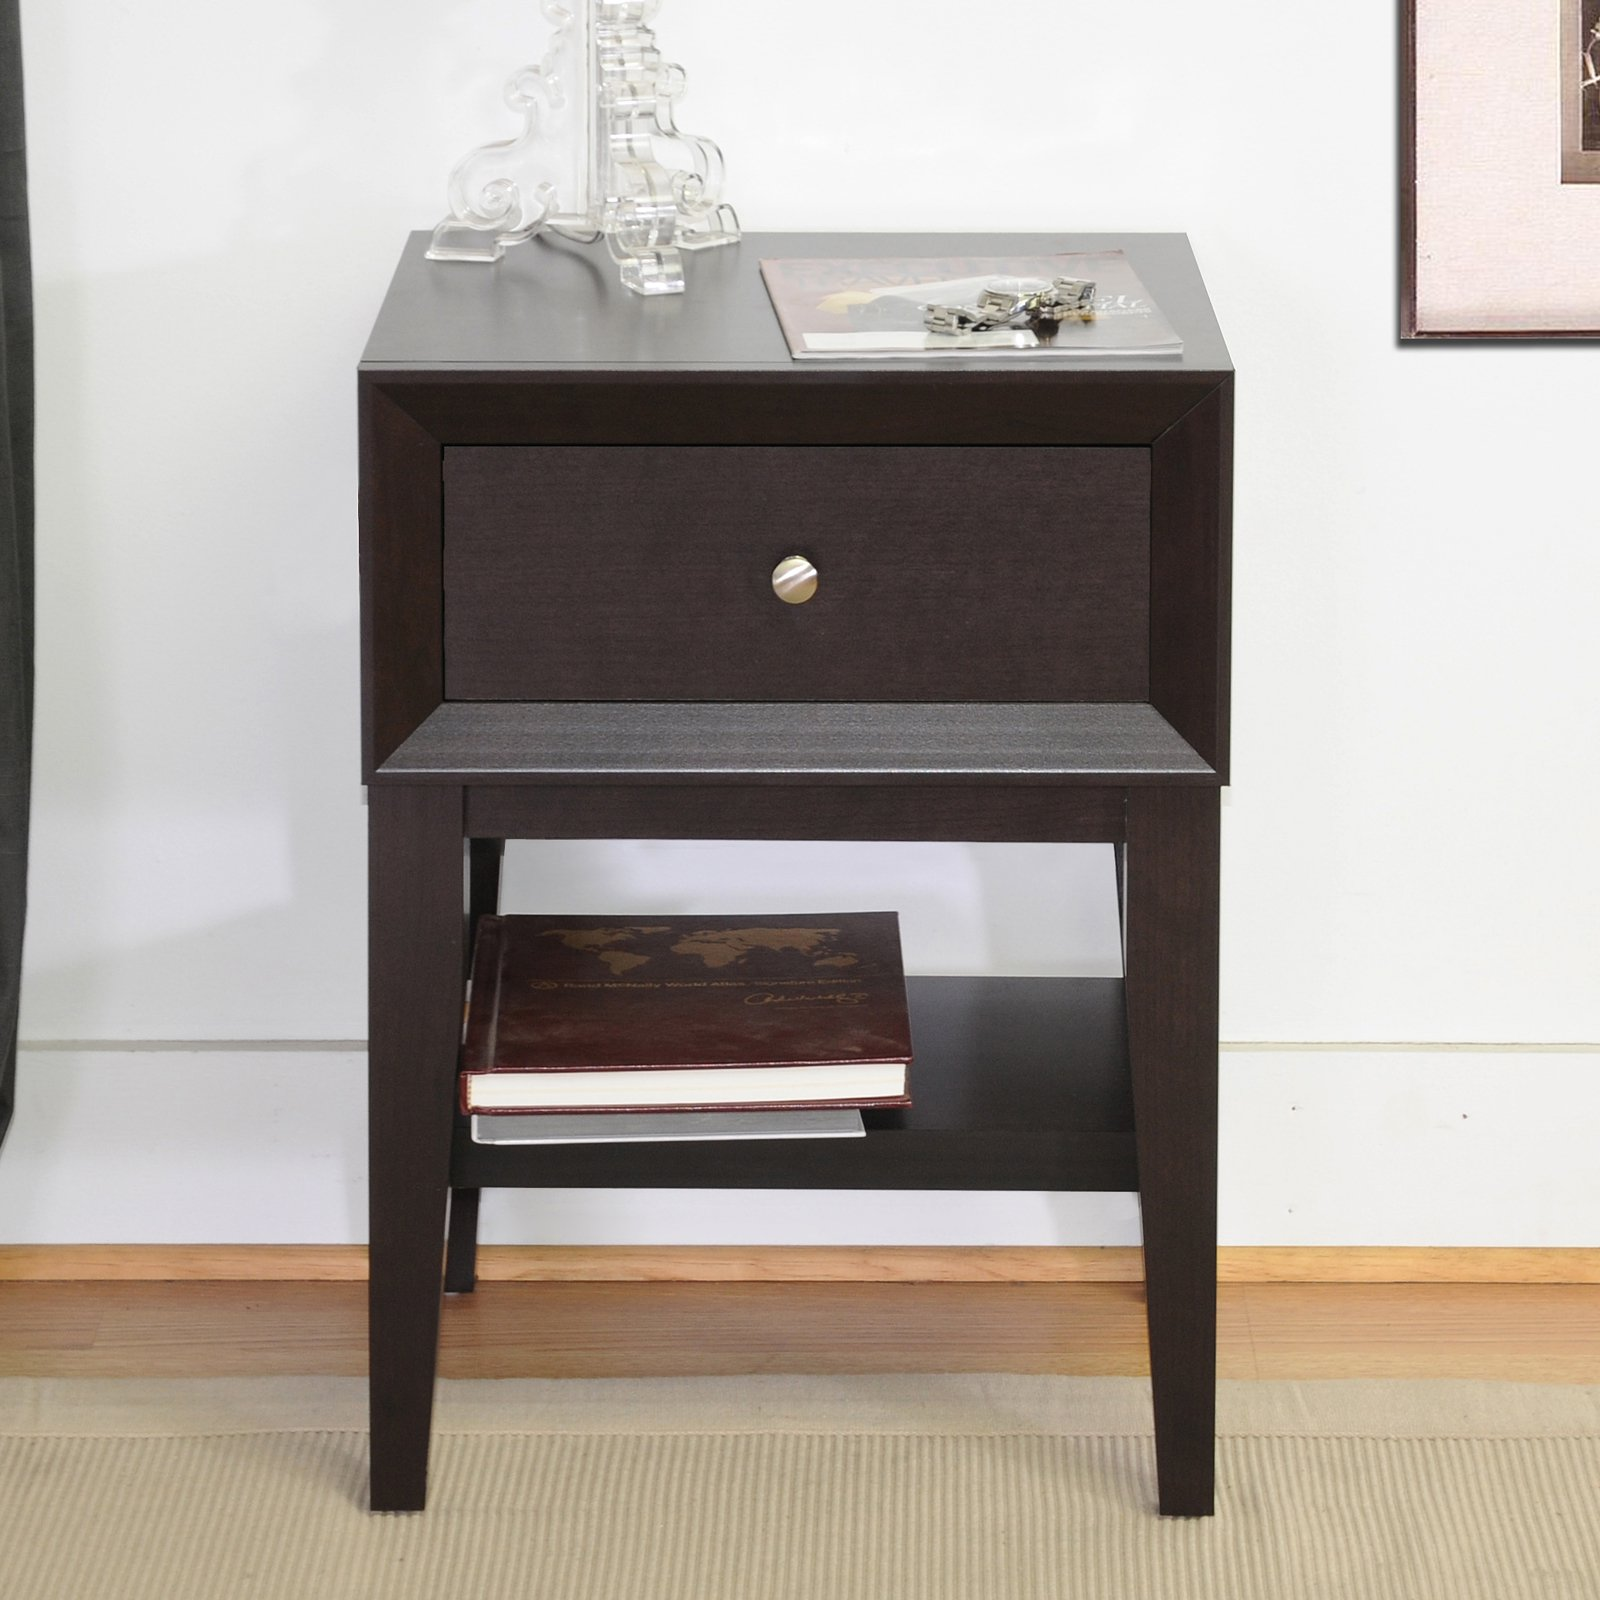 Baxton Studio Gaston 1 Drawer Nightstand